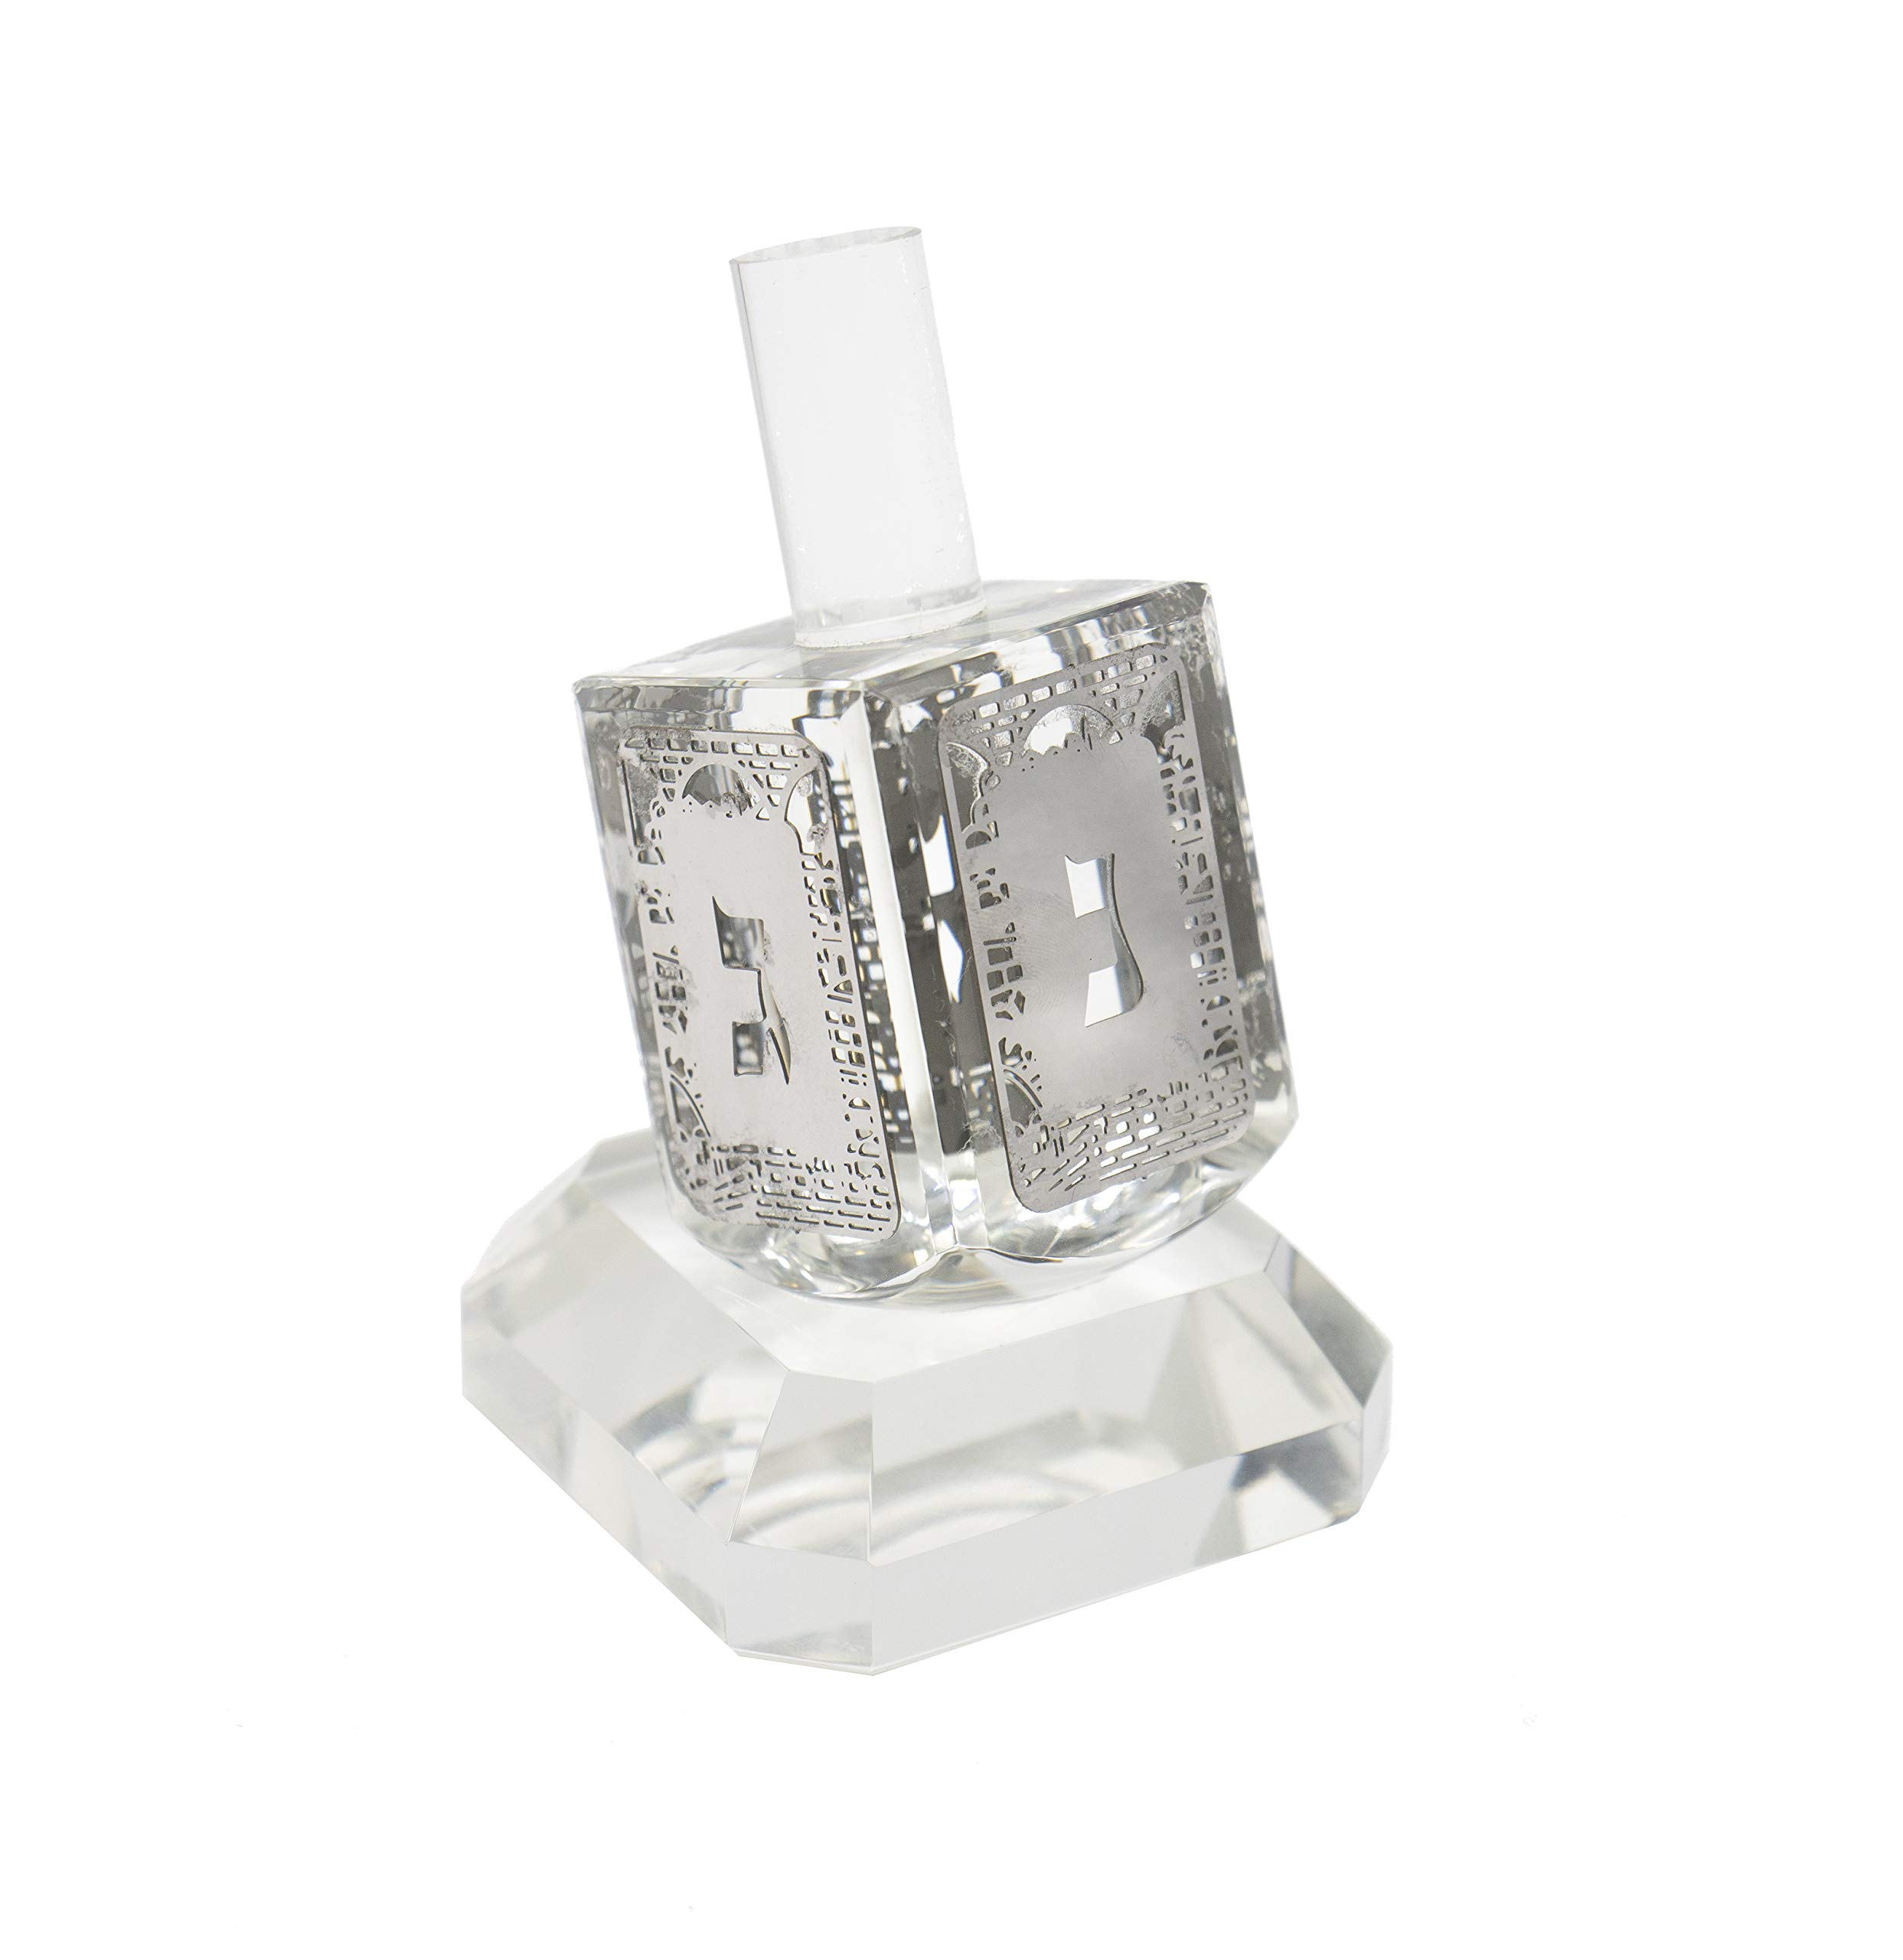 Holyland Crystal Glass Dreidel Made in Jerusalem with Pedestal and Silver Ornaments